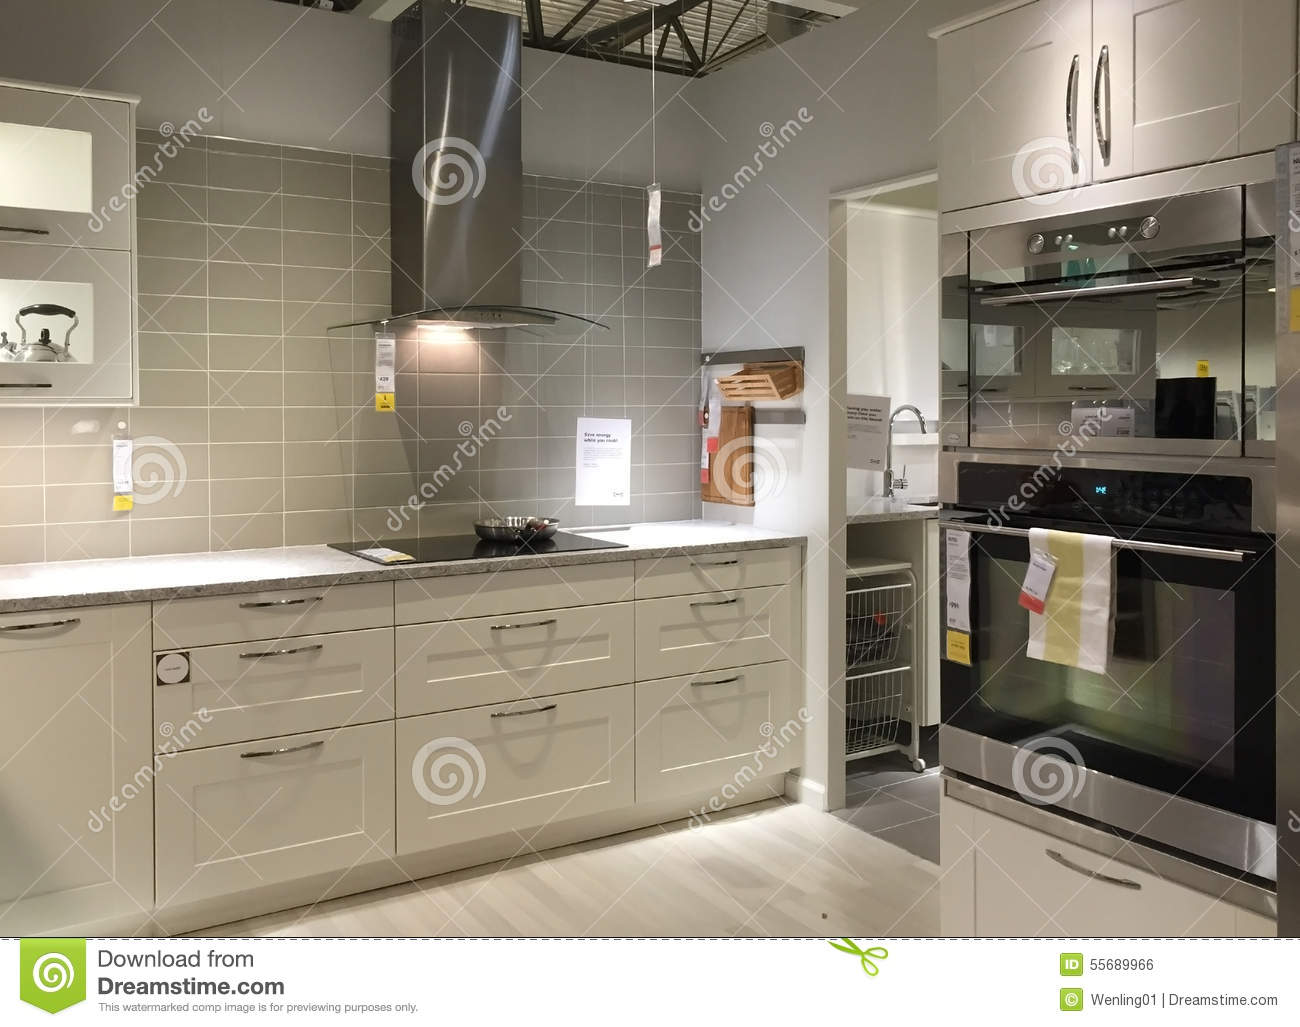 kitchen design stores 32 inch undermount sink clean and neat modern background editorial photo image of at store ikea usa